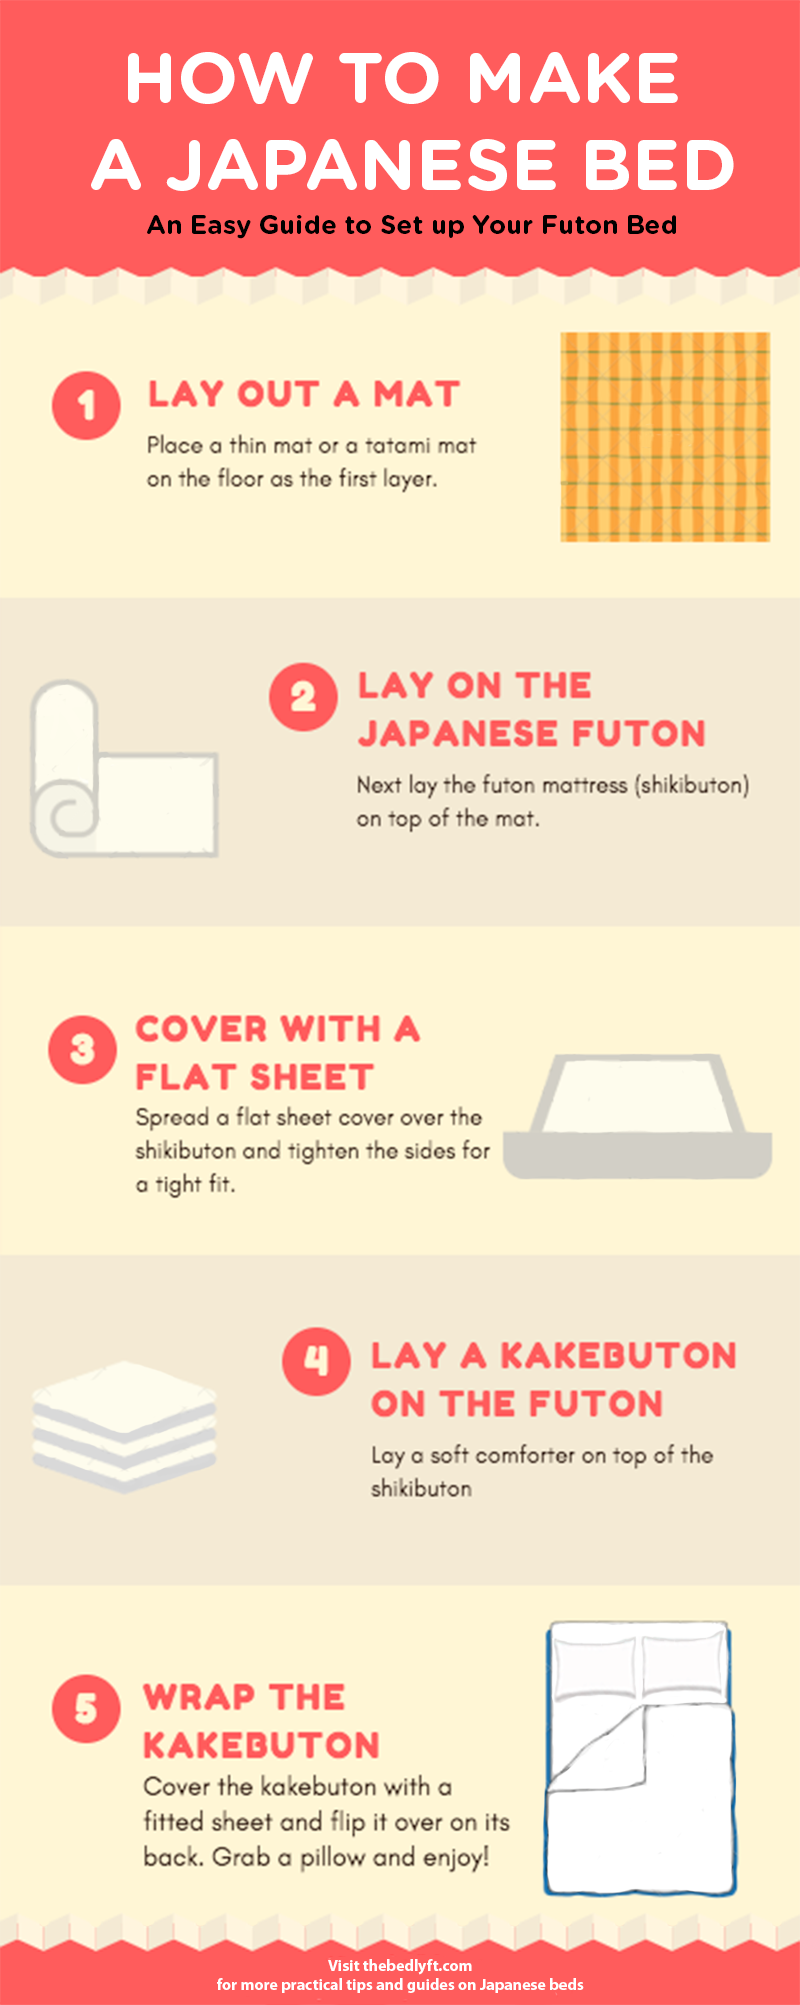 How To Make A Japanese Futon Mattress Diy Japanese Bedroom Idea For Your Home Visit Https Thebedly Japanese Bed Japanese Futon Bed Japanese Futon Mattress